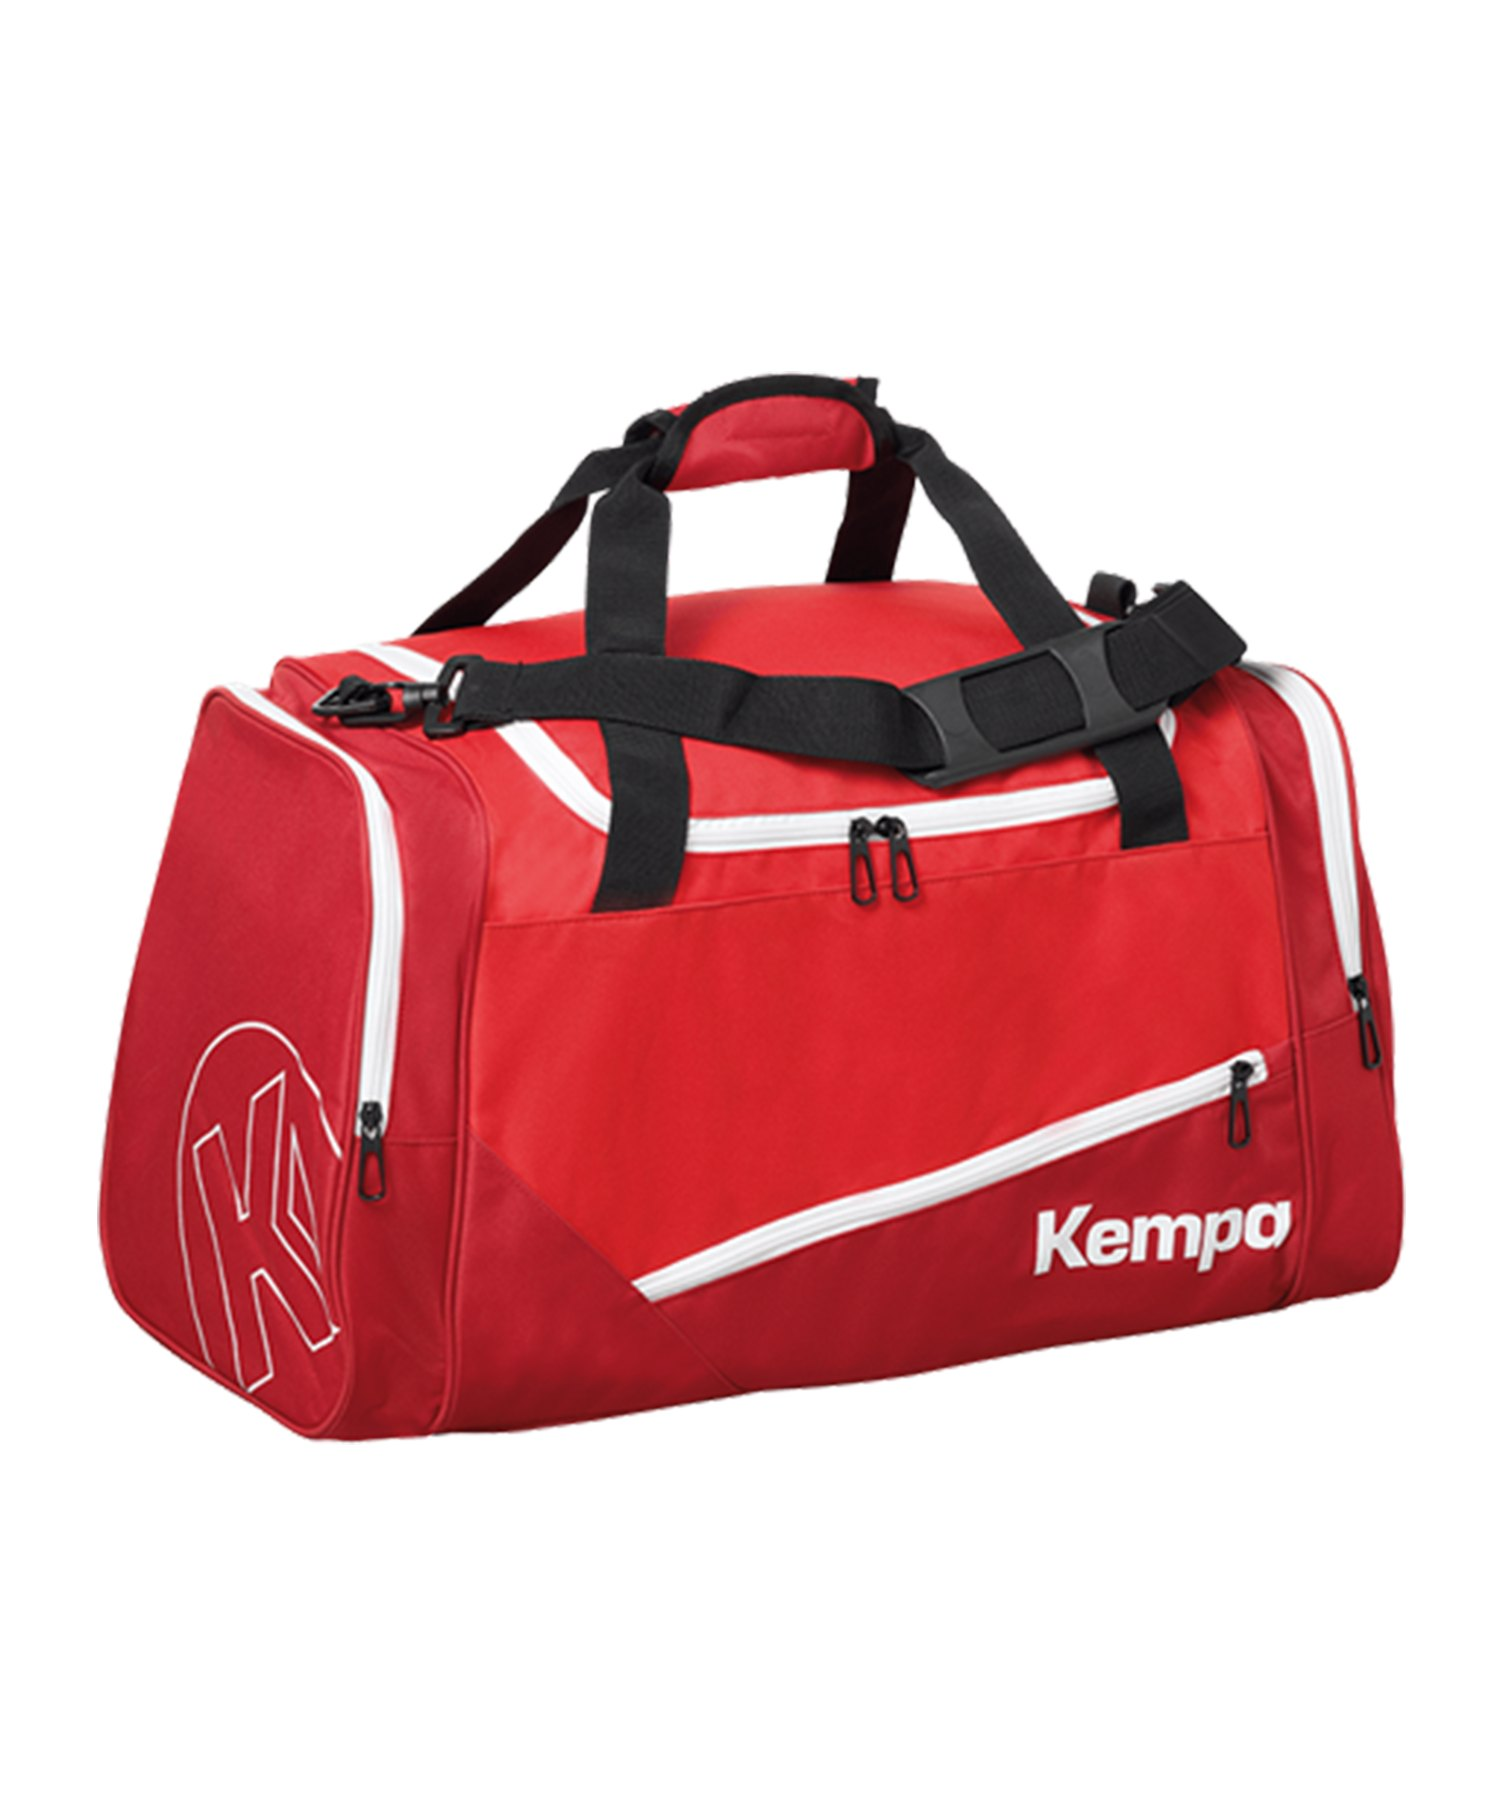 Kempa Sports Bag Sporttasche Small Rot F03 - rot